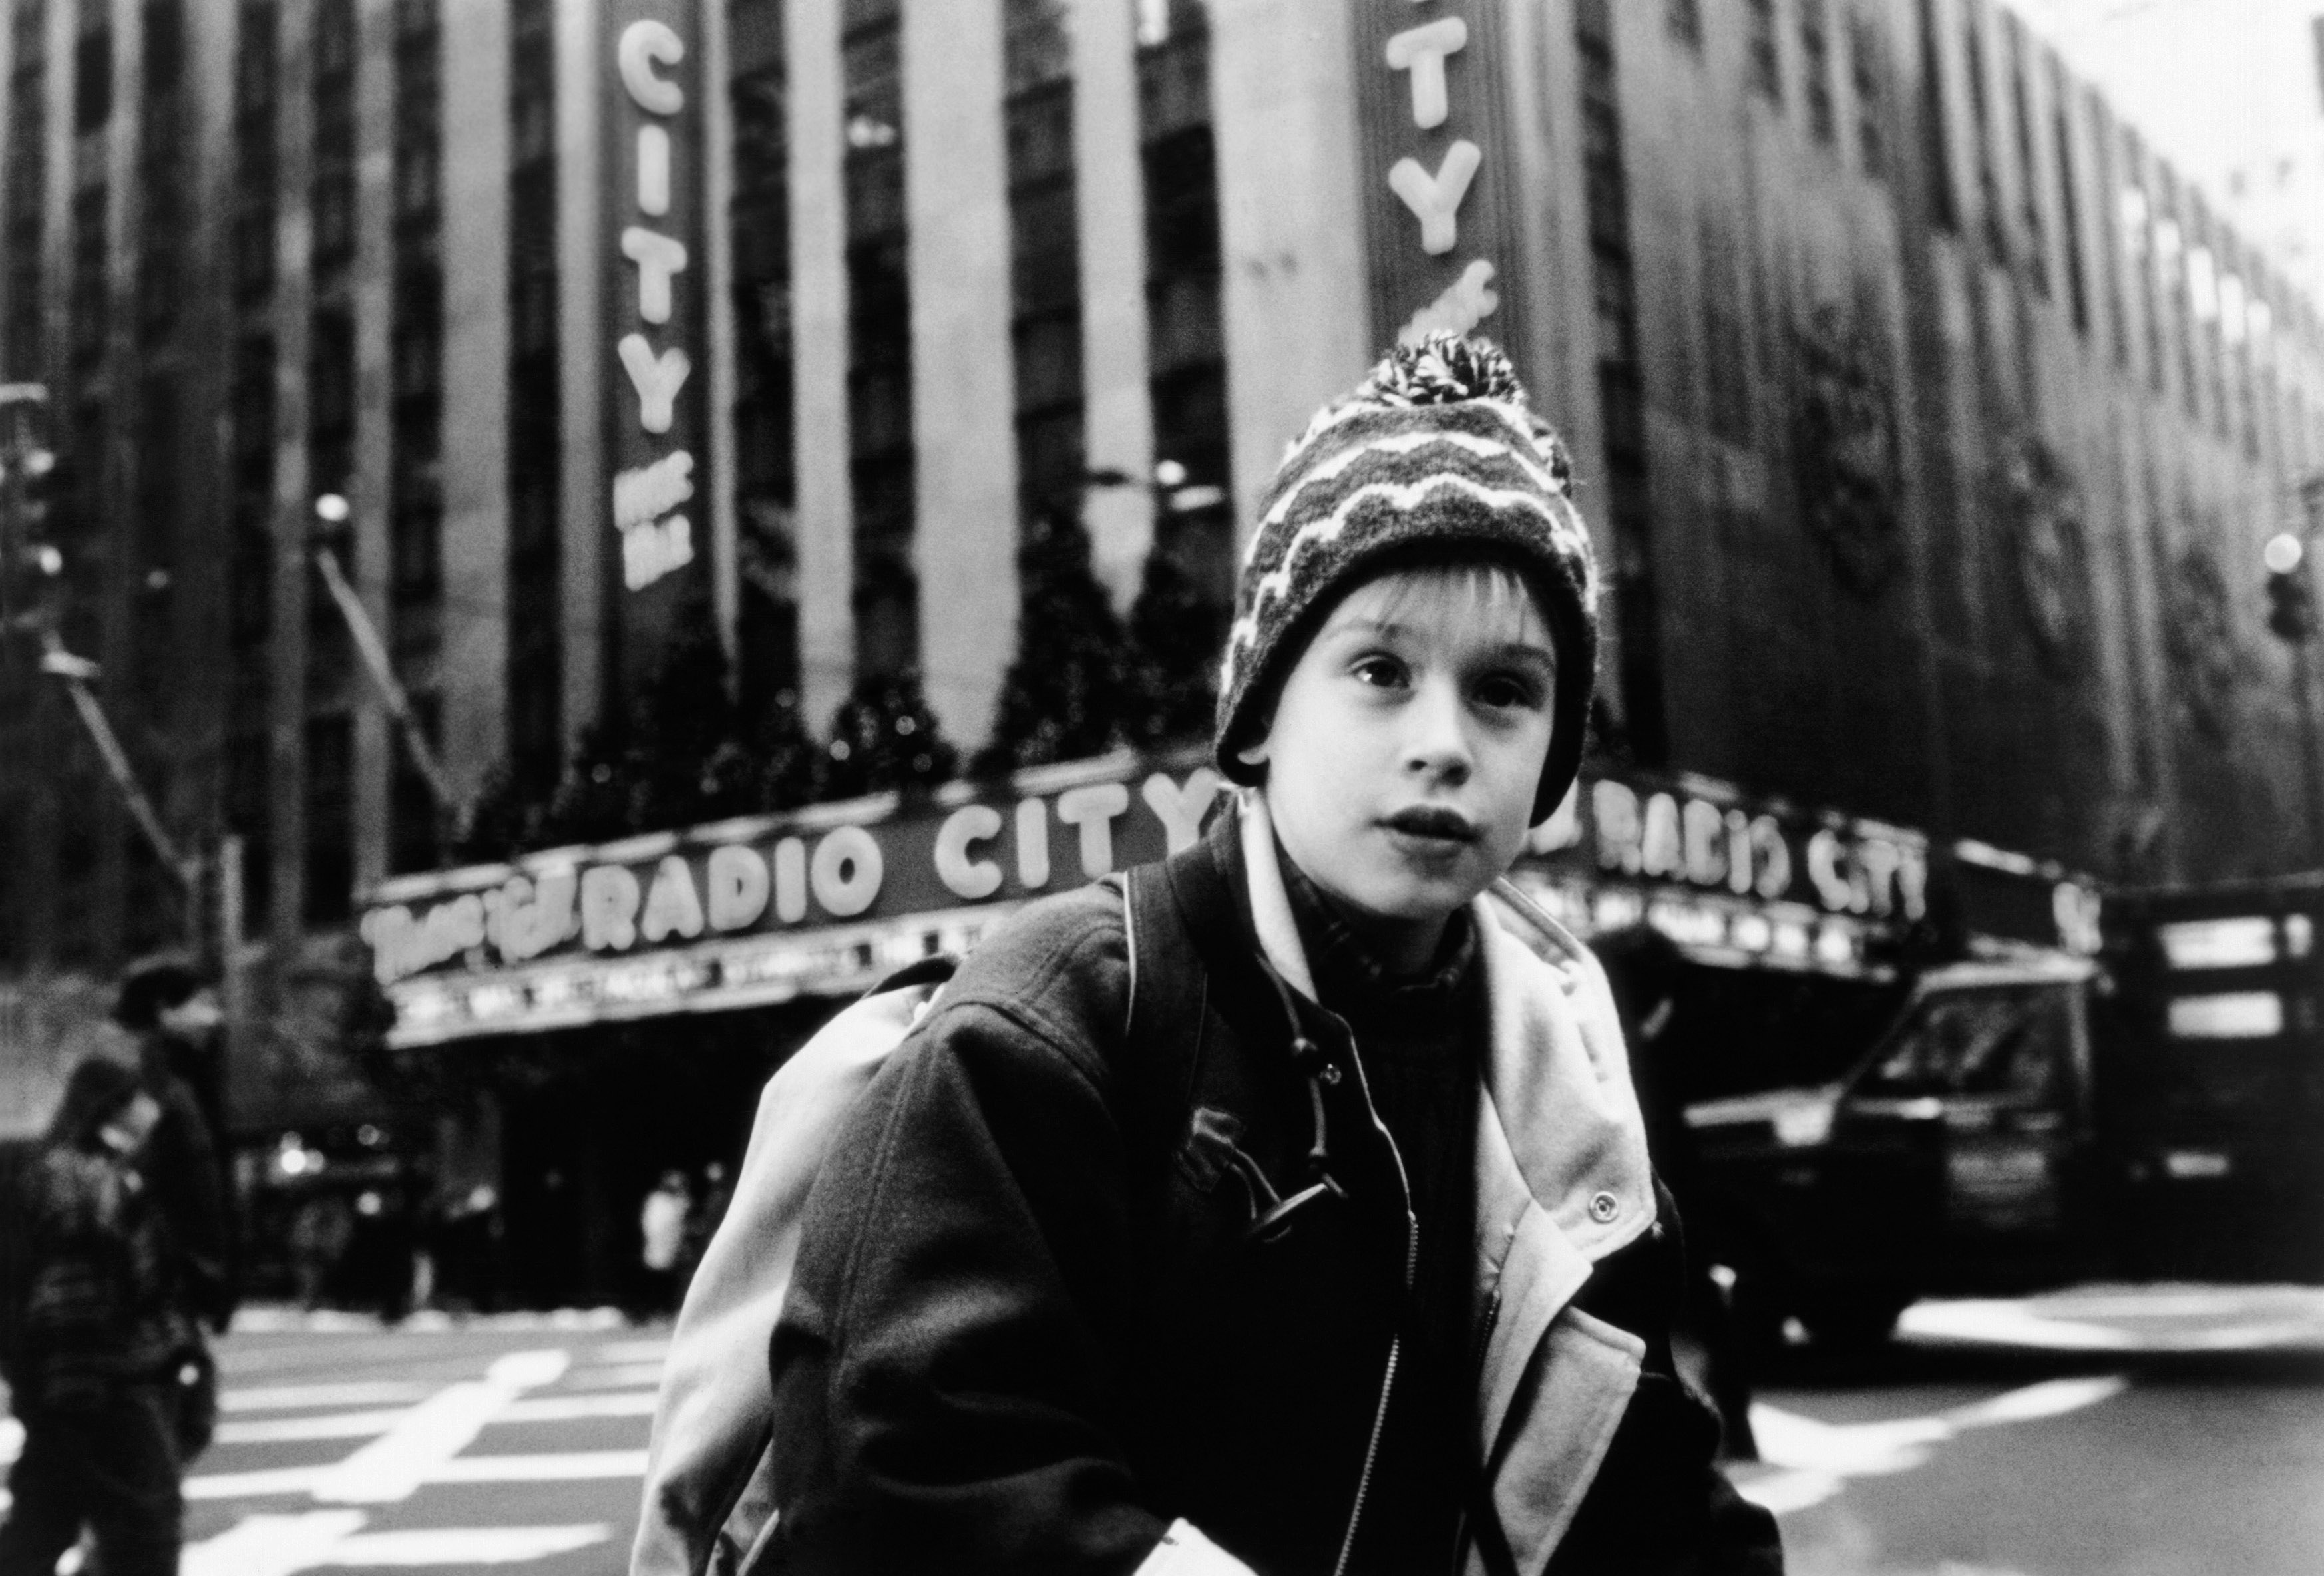 Home Alone 2: Lost in New York's NYC filming locations